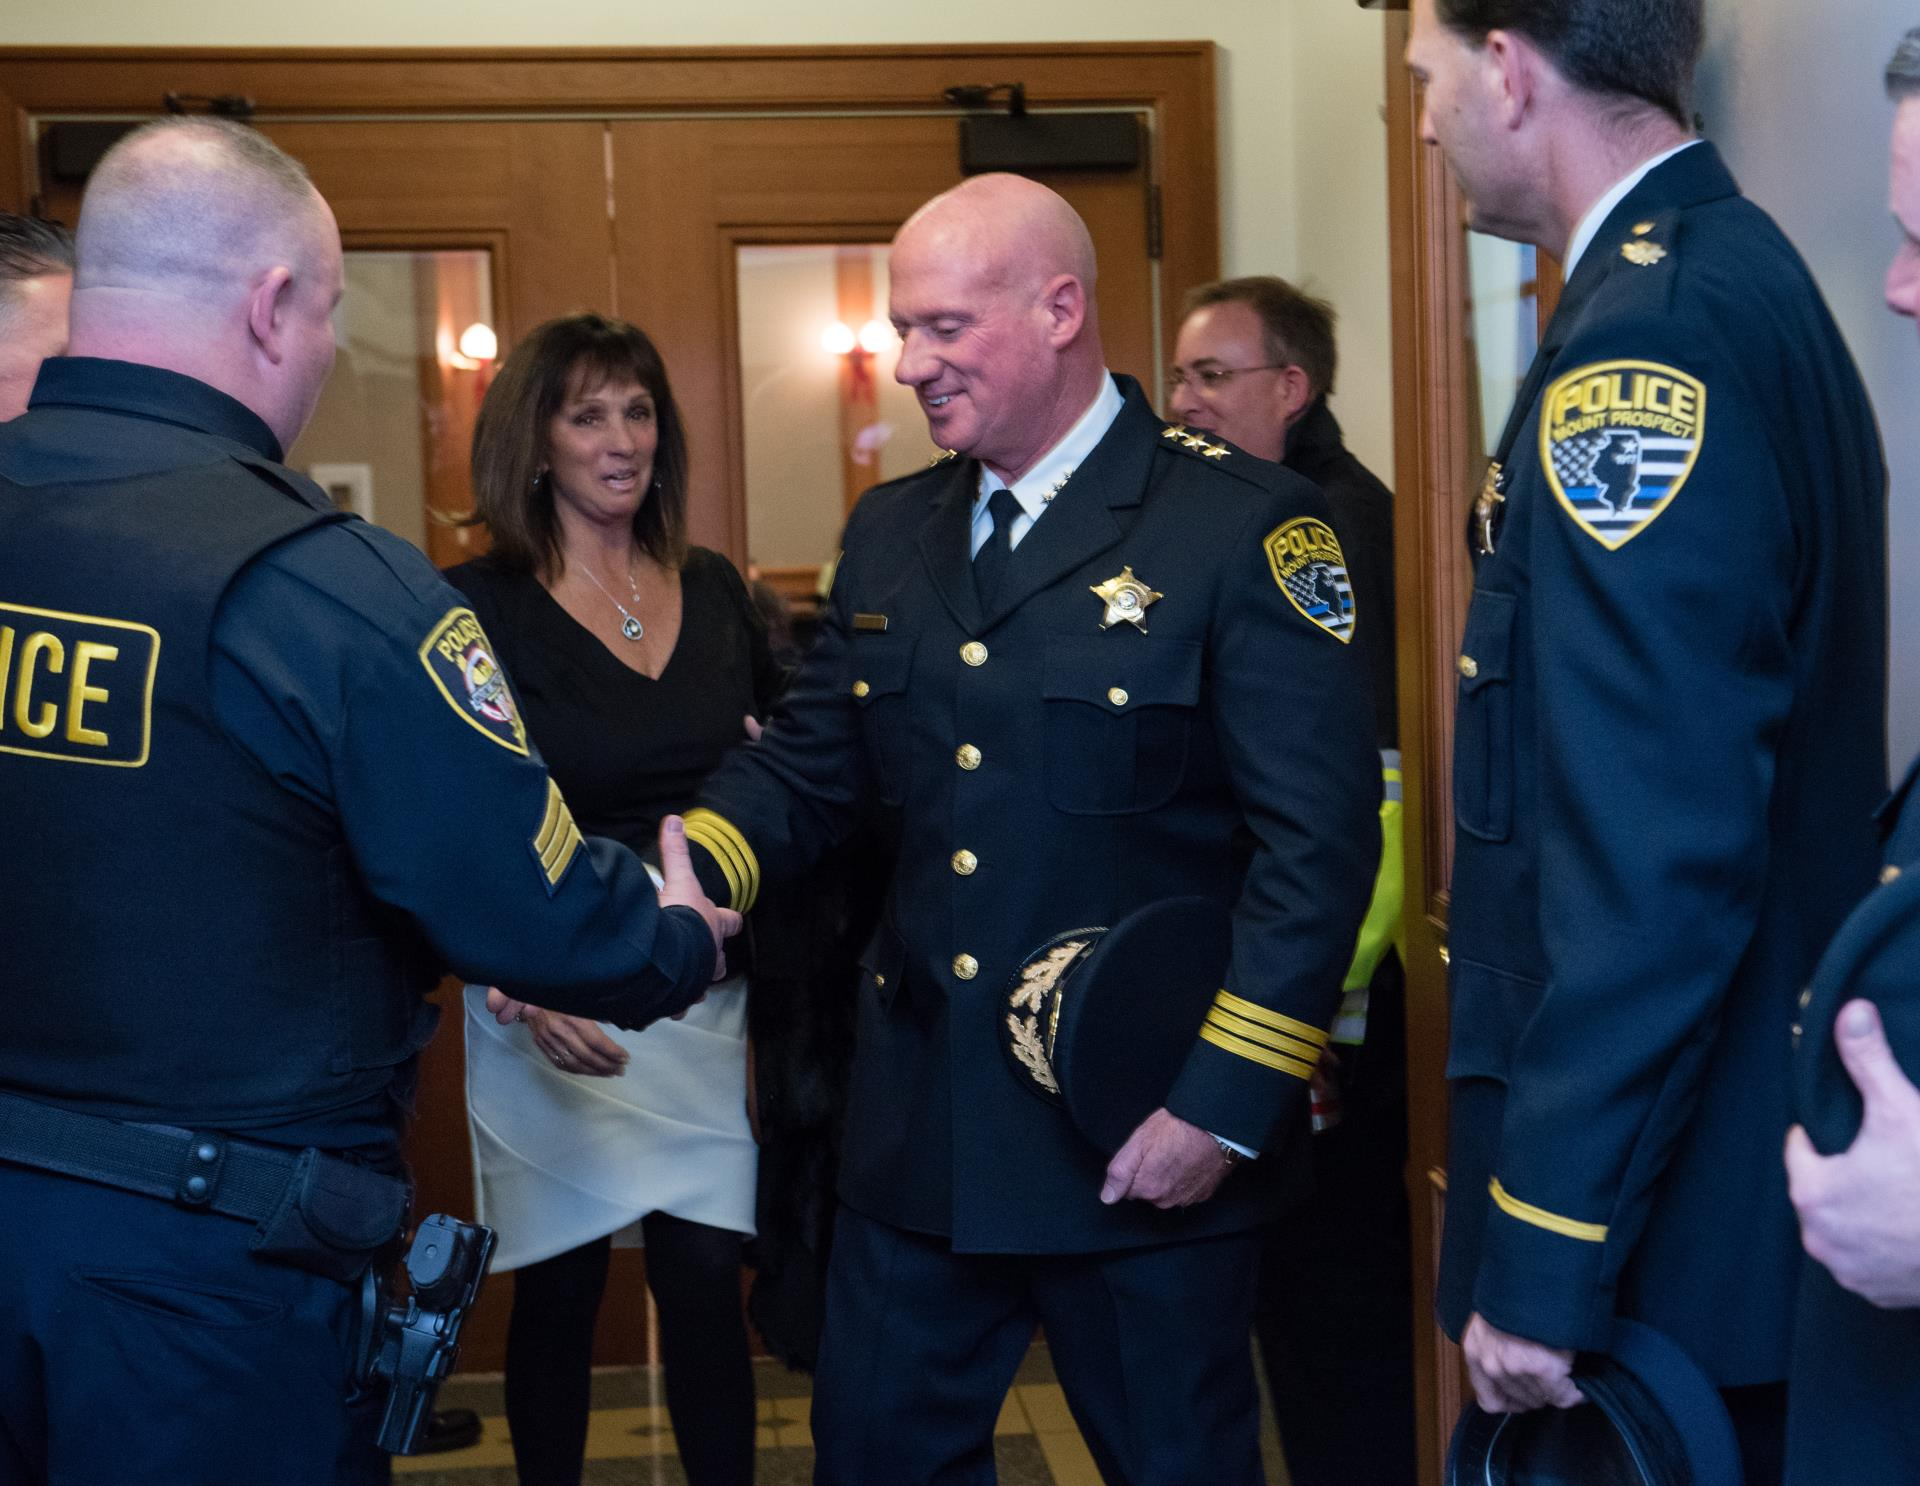 Chief Koziol Swearing-In Ceremony Final-4259